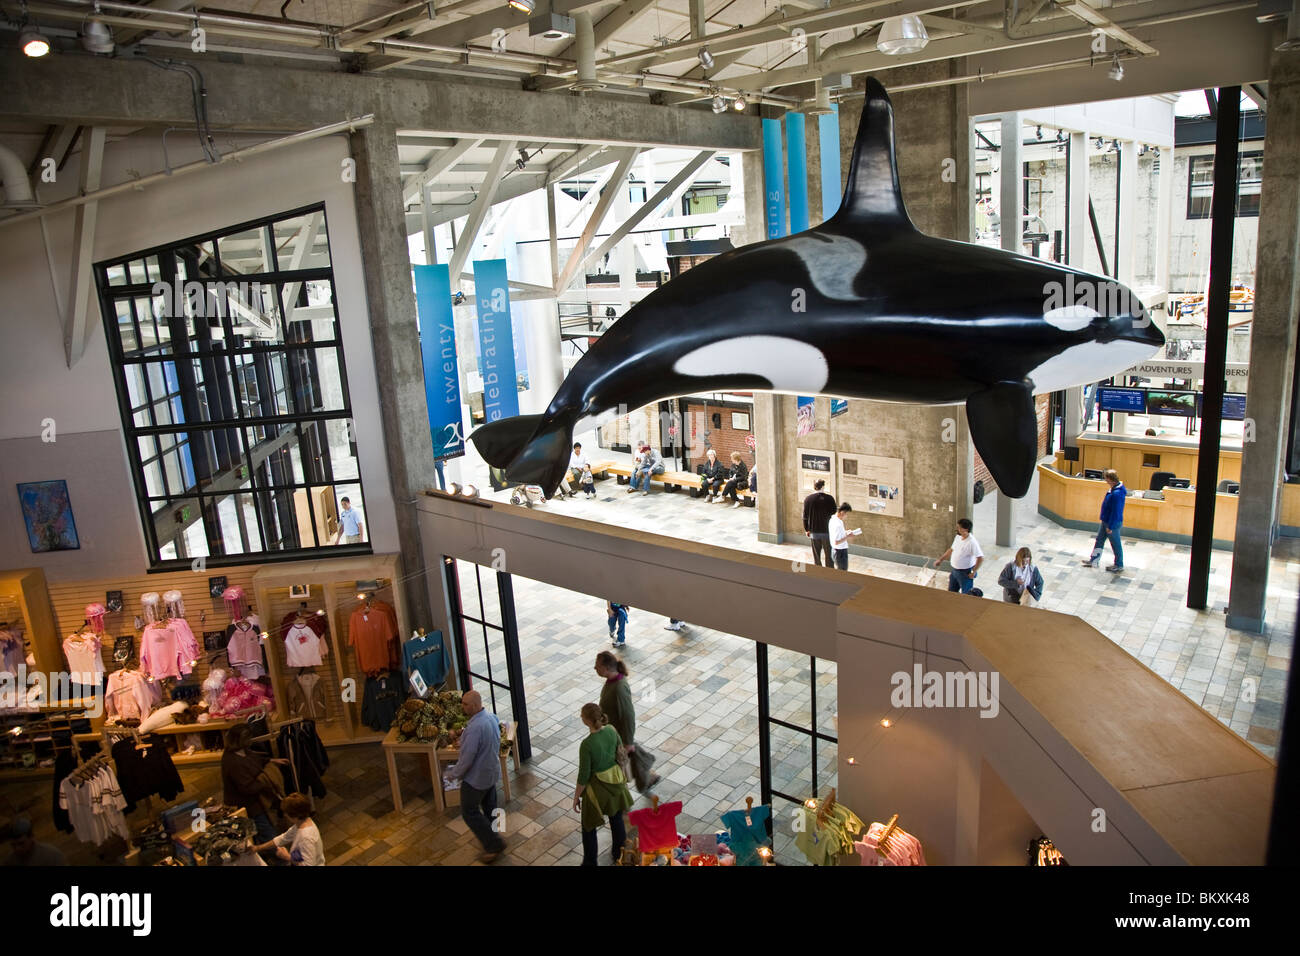 Monterey Bay Aquarium is home to more than 30,000 marine creatures birds mammals and plants - Stock Image